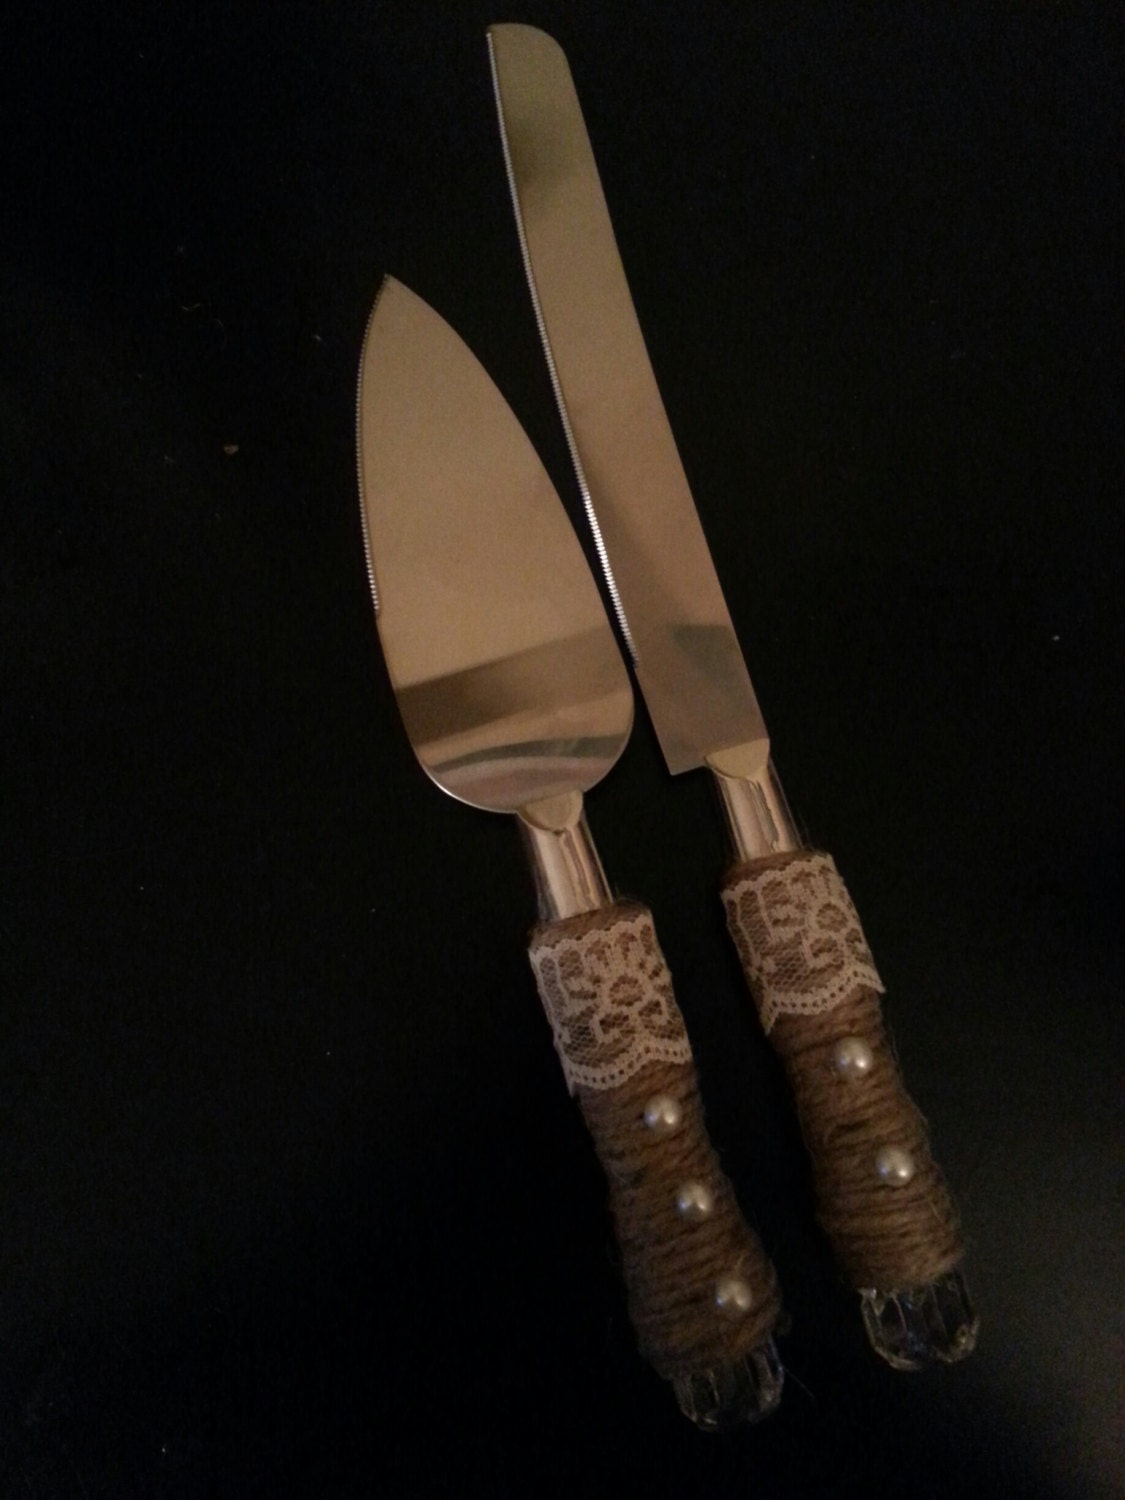 Rustic Wedding Cake Cutter And Server Set By RusticWeddingsRUs